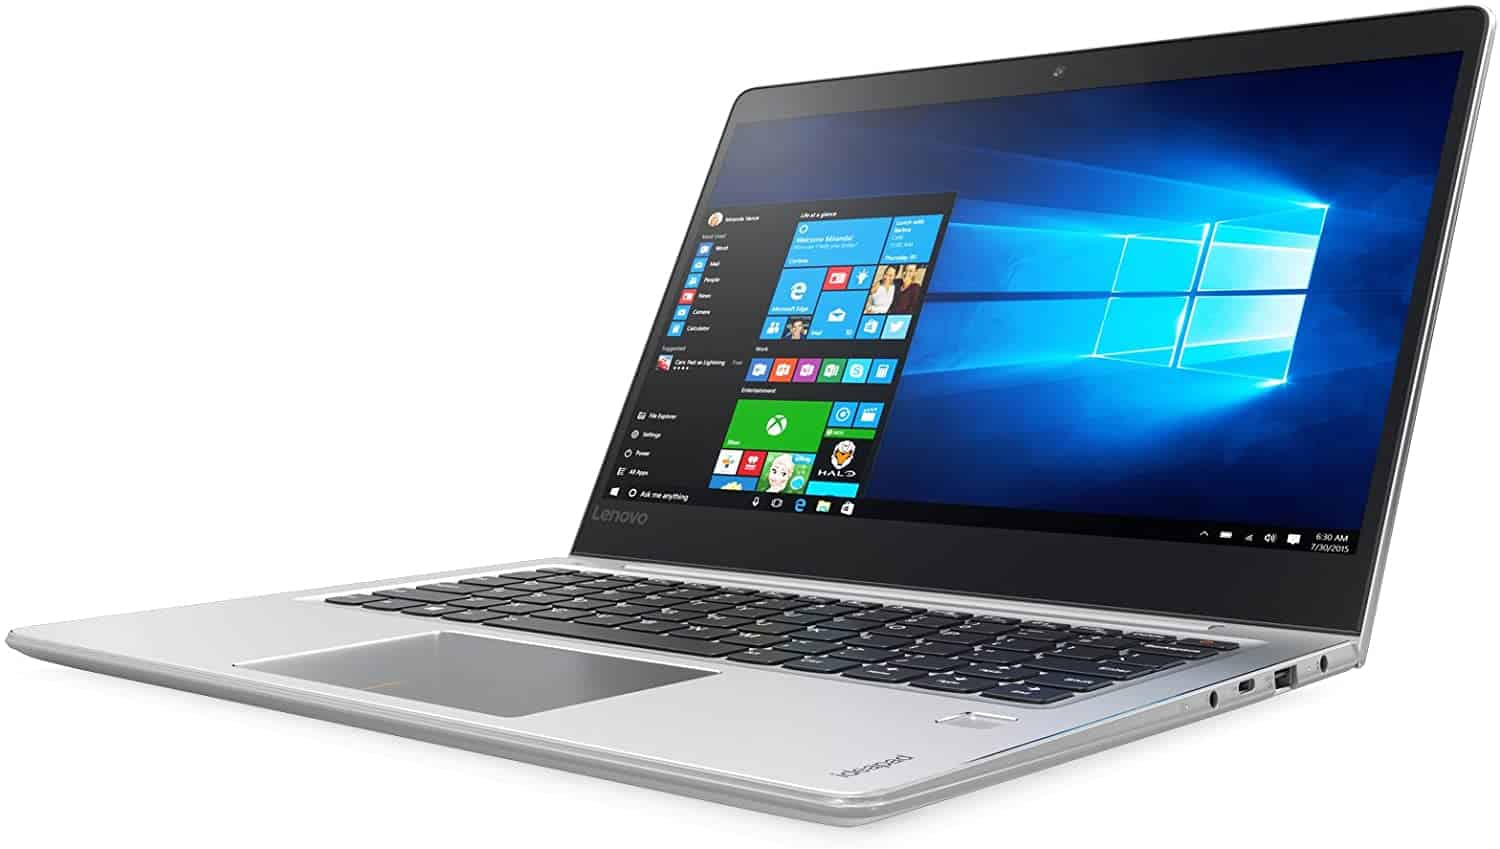 Image of a Lenovo Ideapad recommended as best laptop for medical school